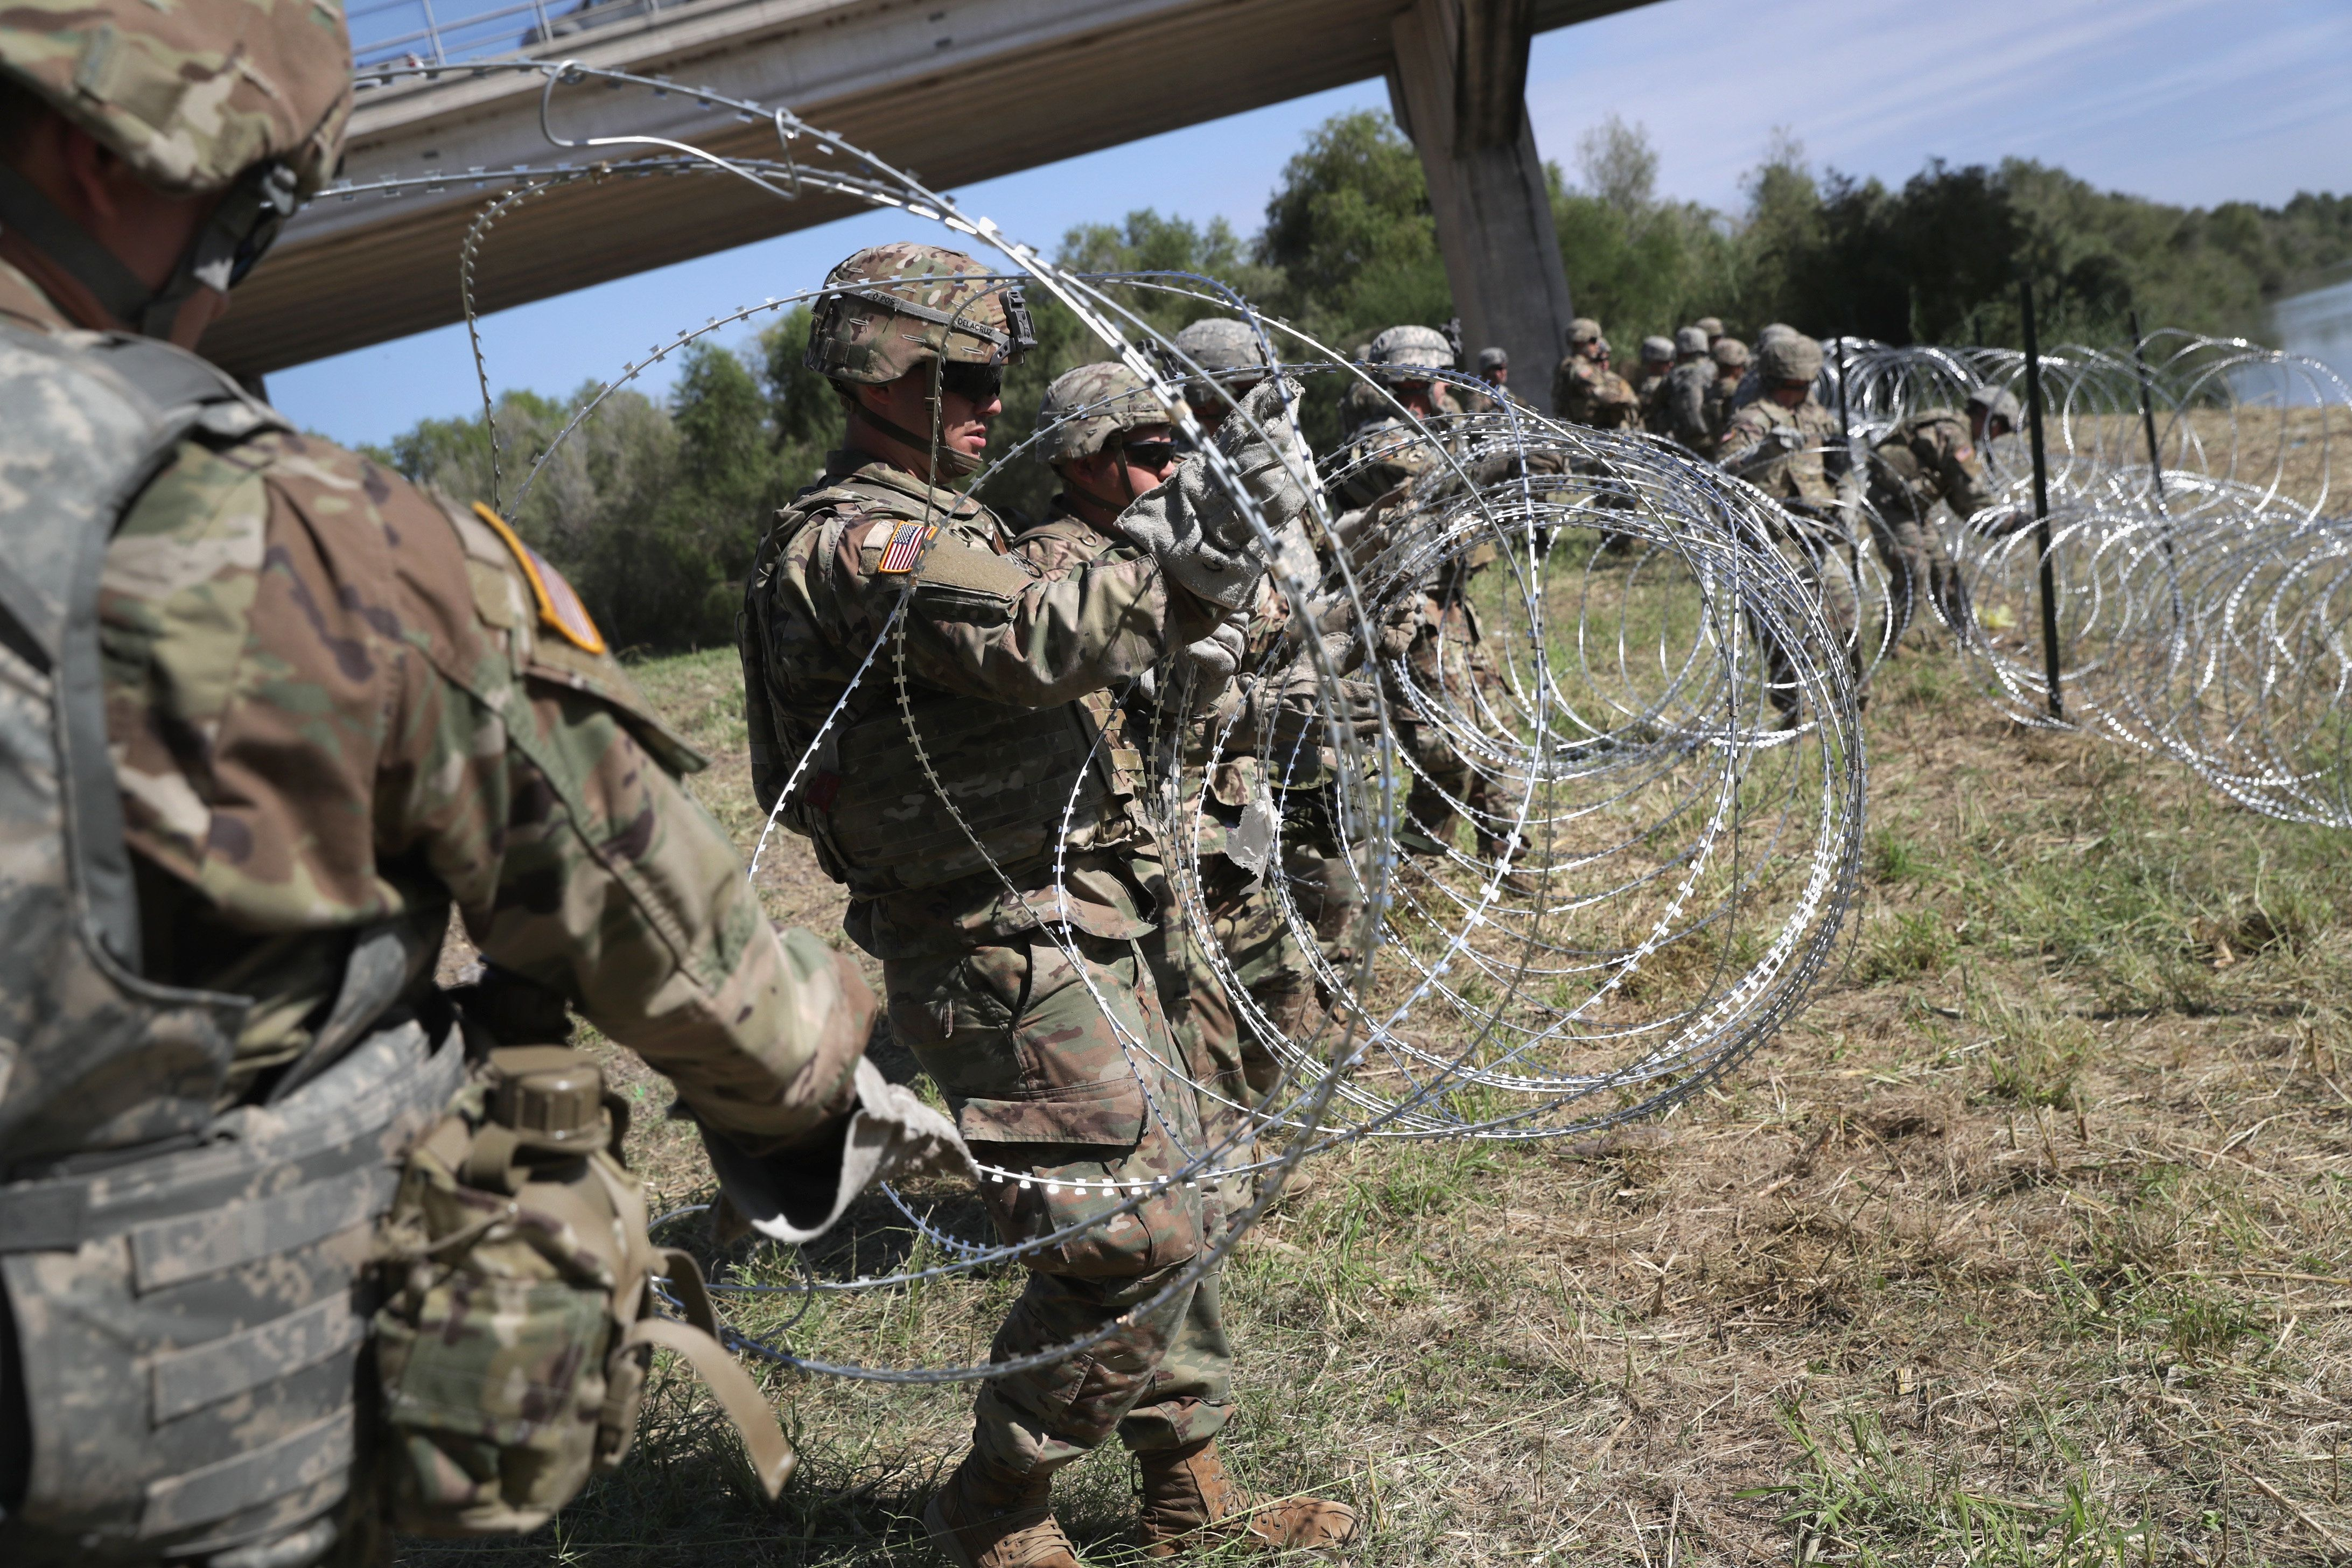 HIDALGO, TX - NOVEMBER 02:  U.S. Army soldiers from Ft. Riley, Kansas install protective wire along the Rio Grande at the U.S.-Mexico border on November 2, 2018 in Hidalgo, Texas. U.S. President Donald Trump ordered the troops to the border to bolster security at points of entry where an immigrant caravan may attempt to cross in upcoming weeks. The troops in Hidalgo were from the 97th MP Battalion and had arrived to the Rio Grande Valley the day before.  (Photo by John Moore/Getty Images)